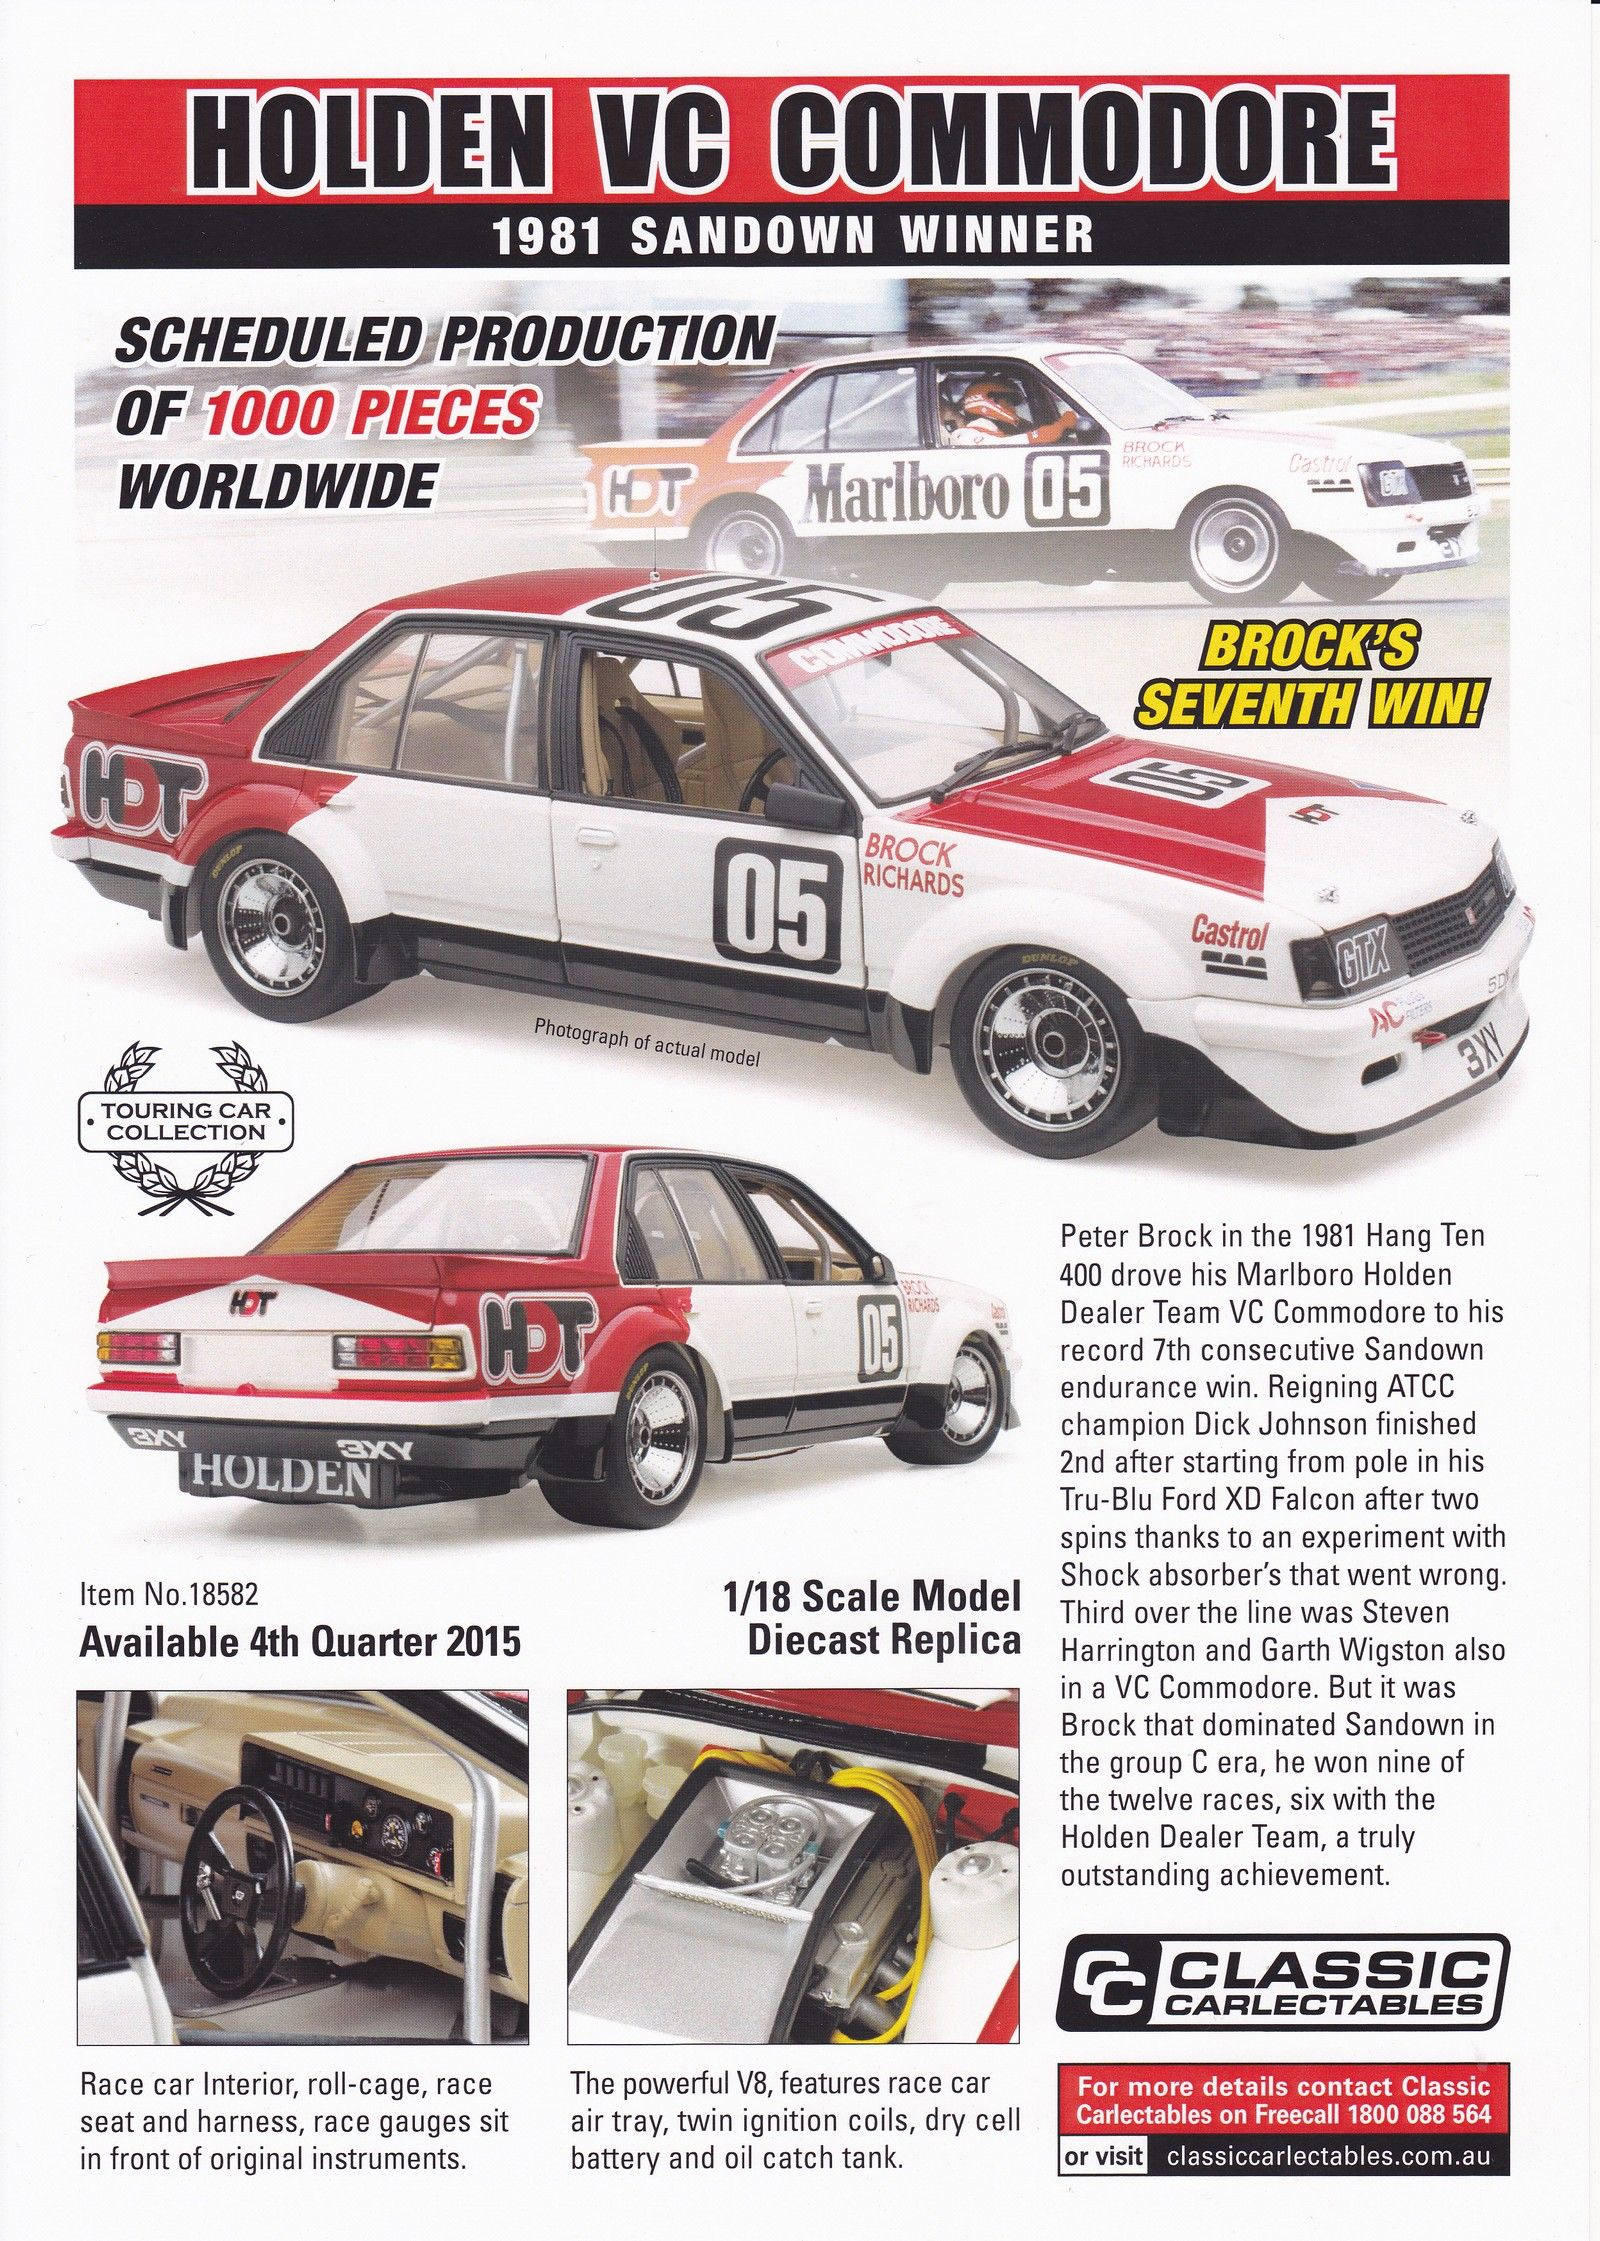 1:18 Scale. Peter Brock #05 Holden Dealer Team  Holden VC Commodore 1981 Sandown 400 Winner. Model features opening doors and bonnet to reveal detailed engine. Comes with certificate of authenticity.  Scheduled Production of 1000.  SRP $240.00 Due 4th quarter 2015